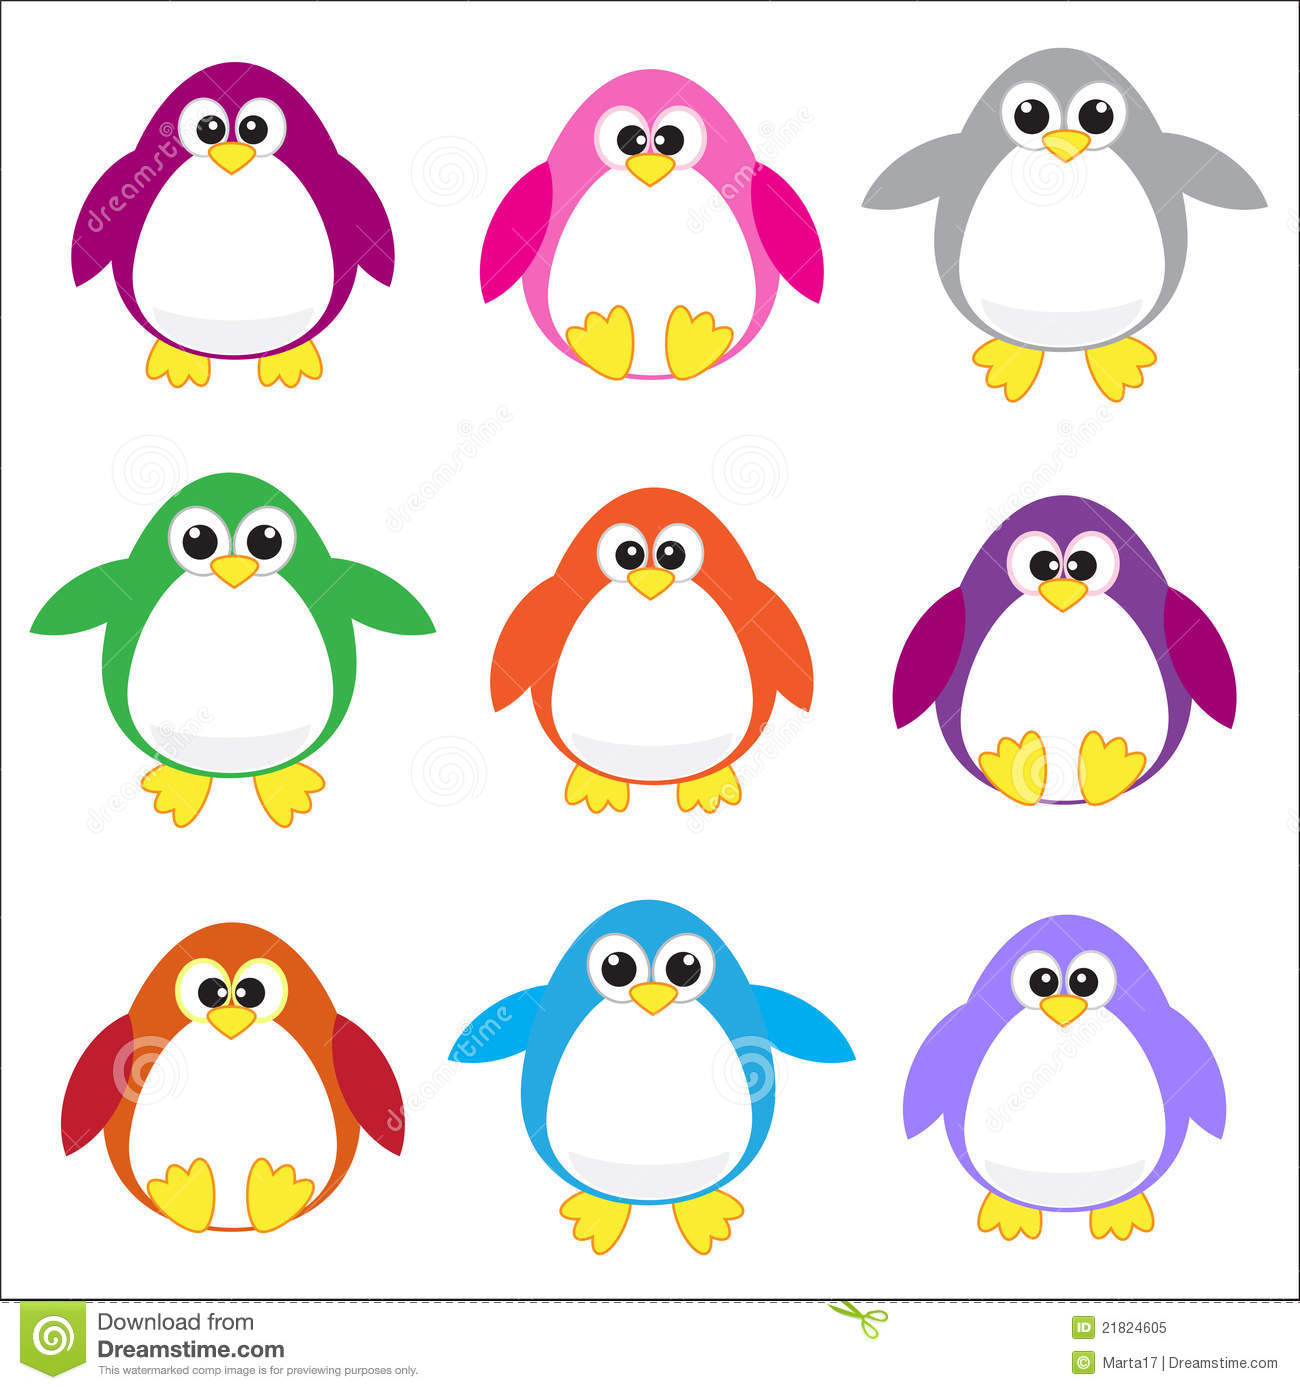 Color Penguins Clip Art Royalty Free Stock Photo - Image: 21824605